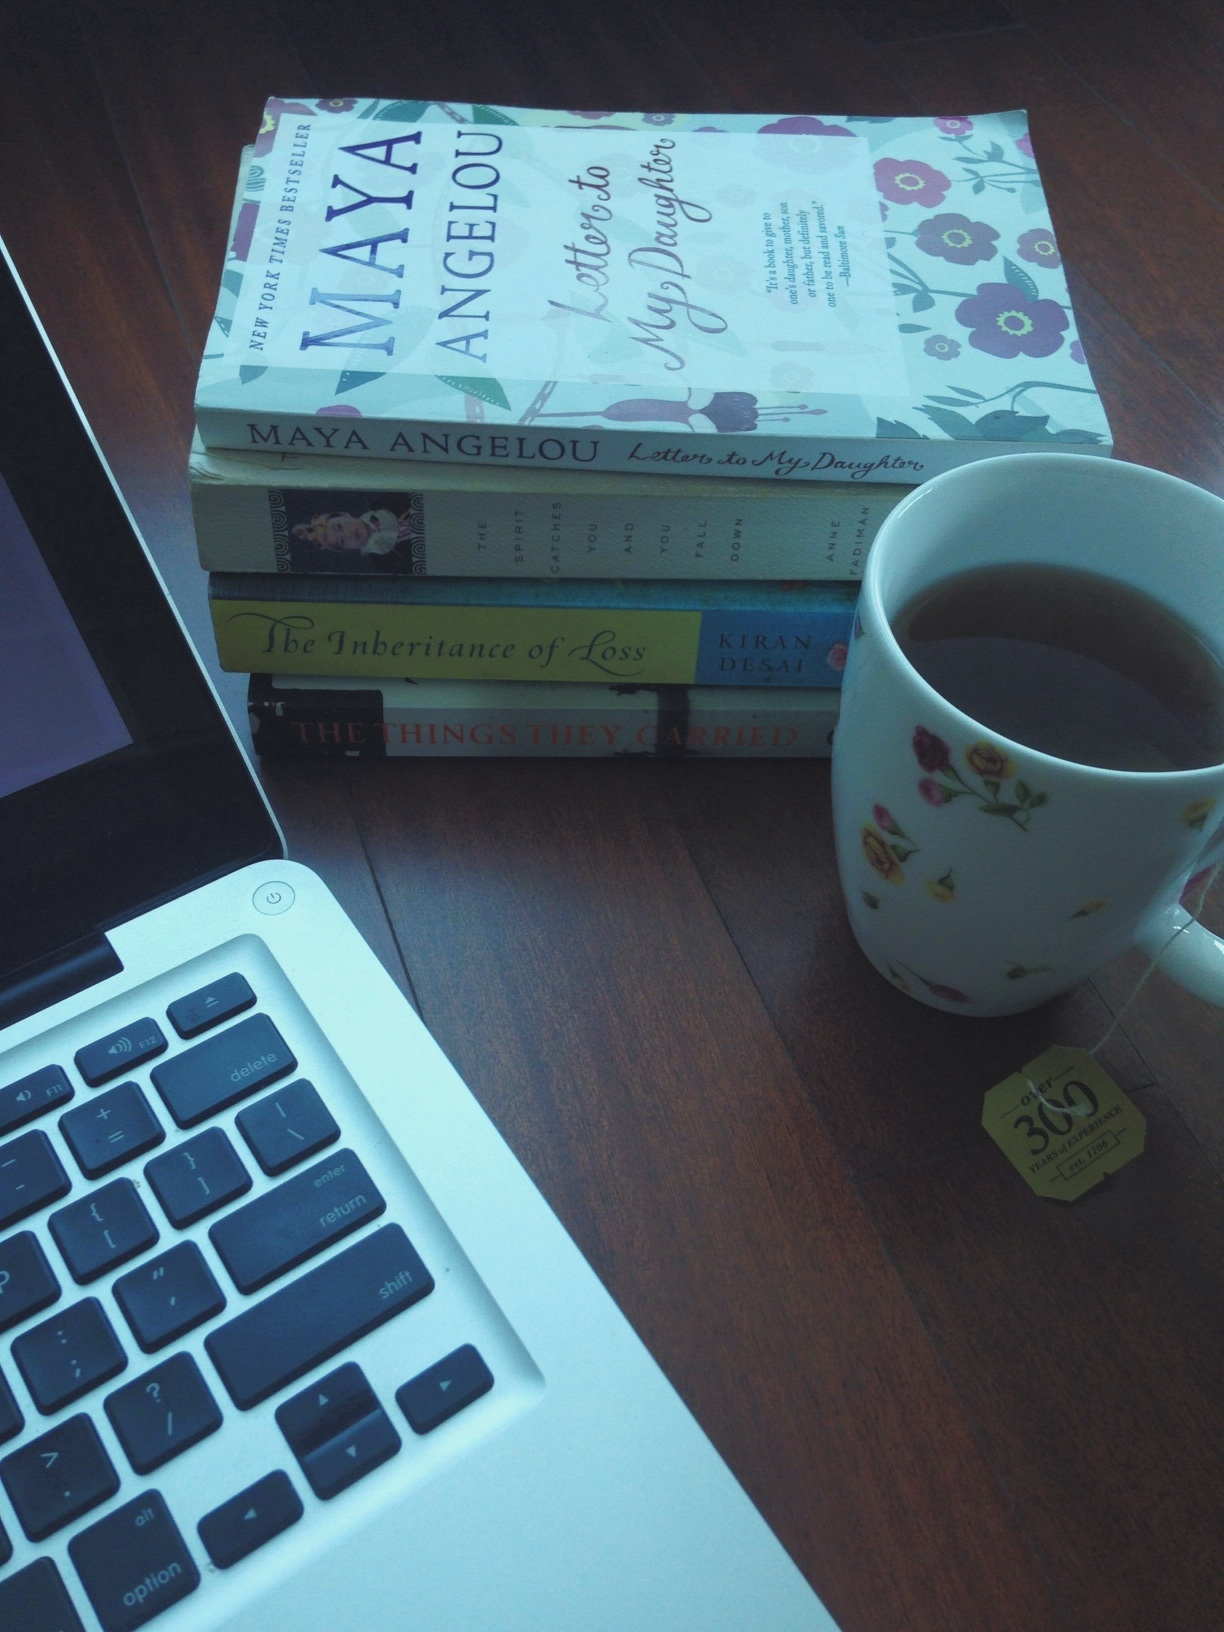 My current view: laptop, our 4 picks, a cup of Earl Grey